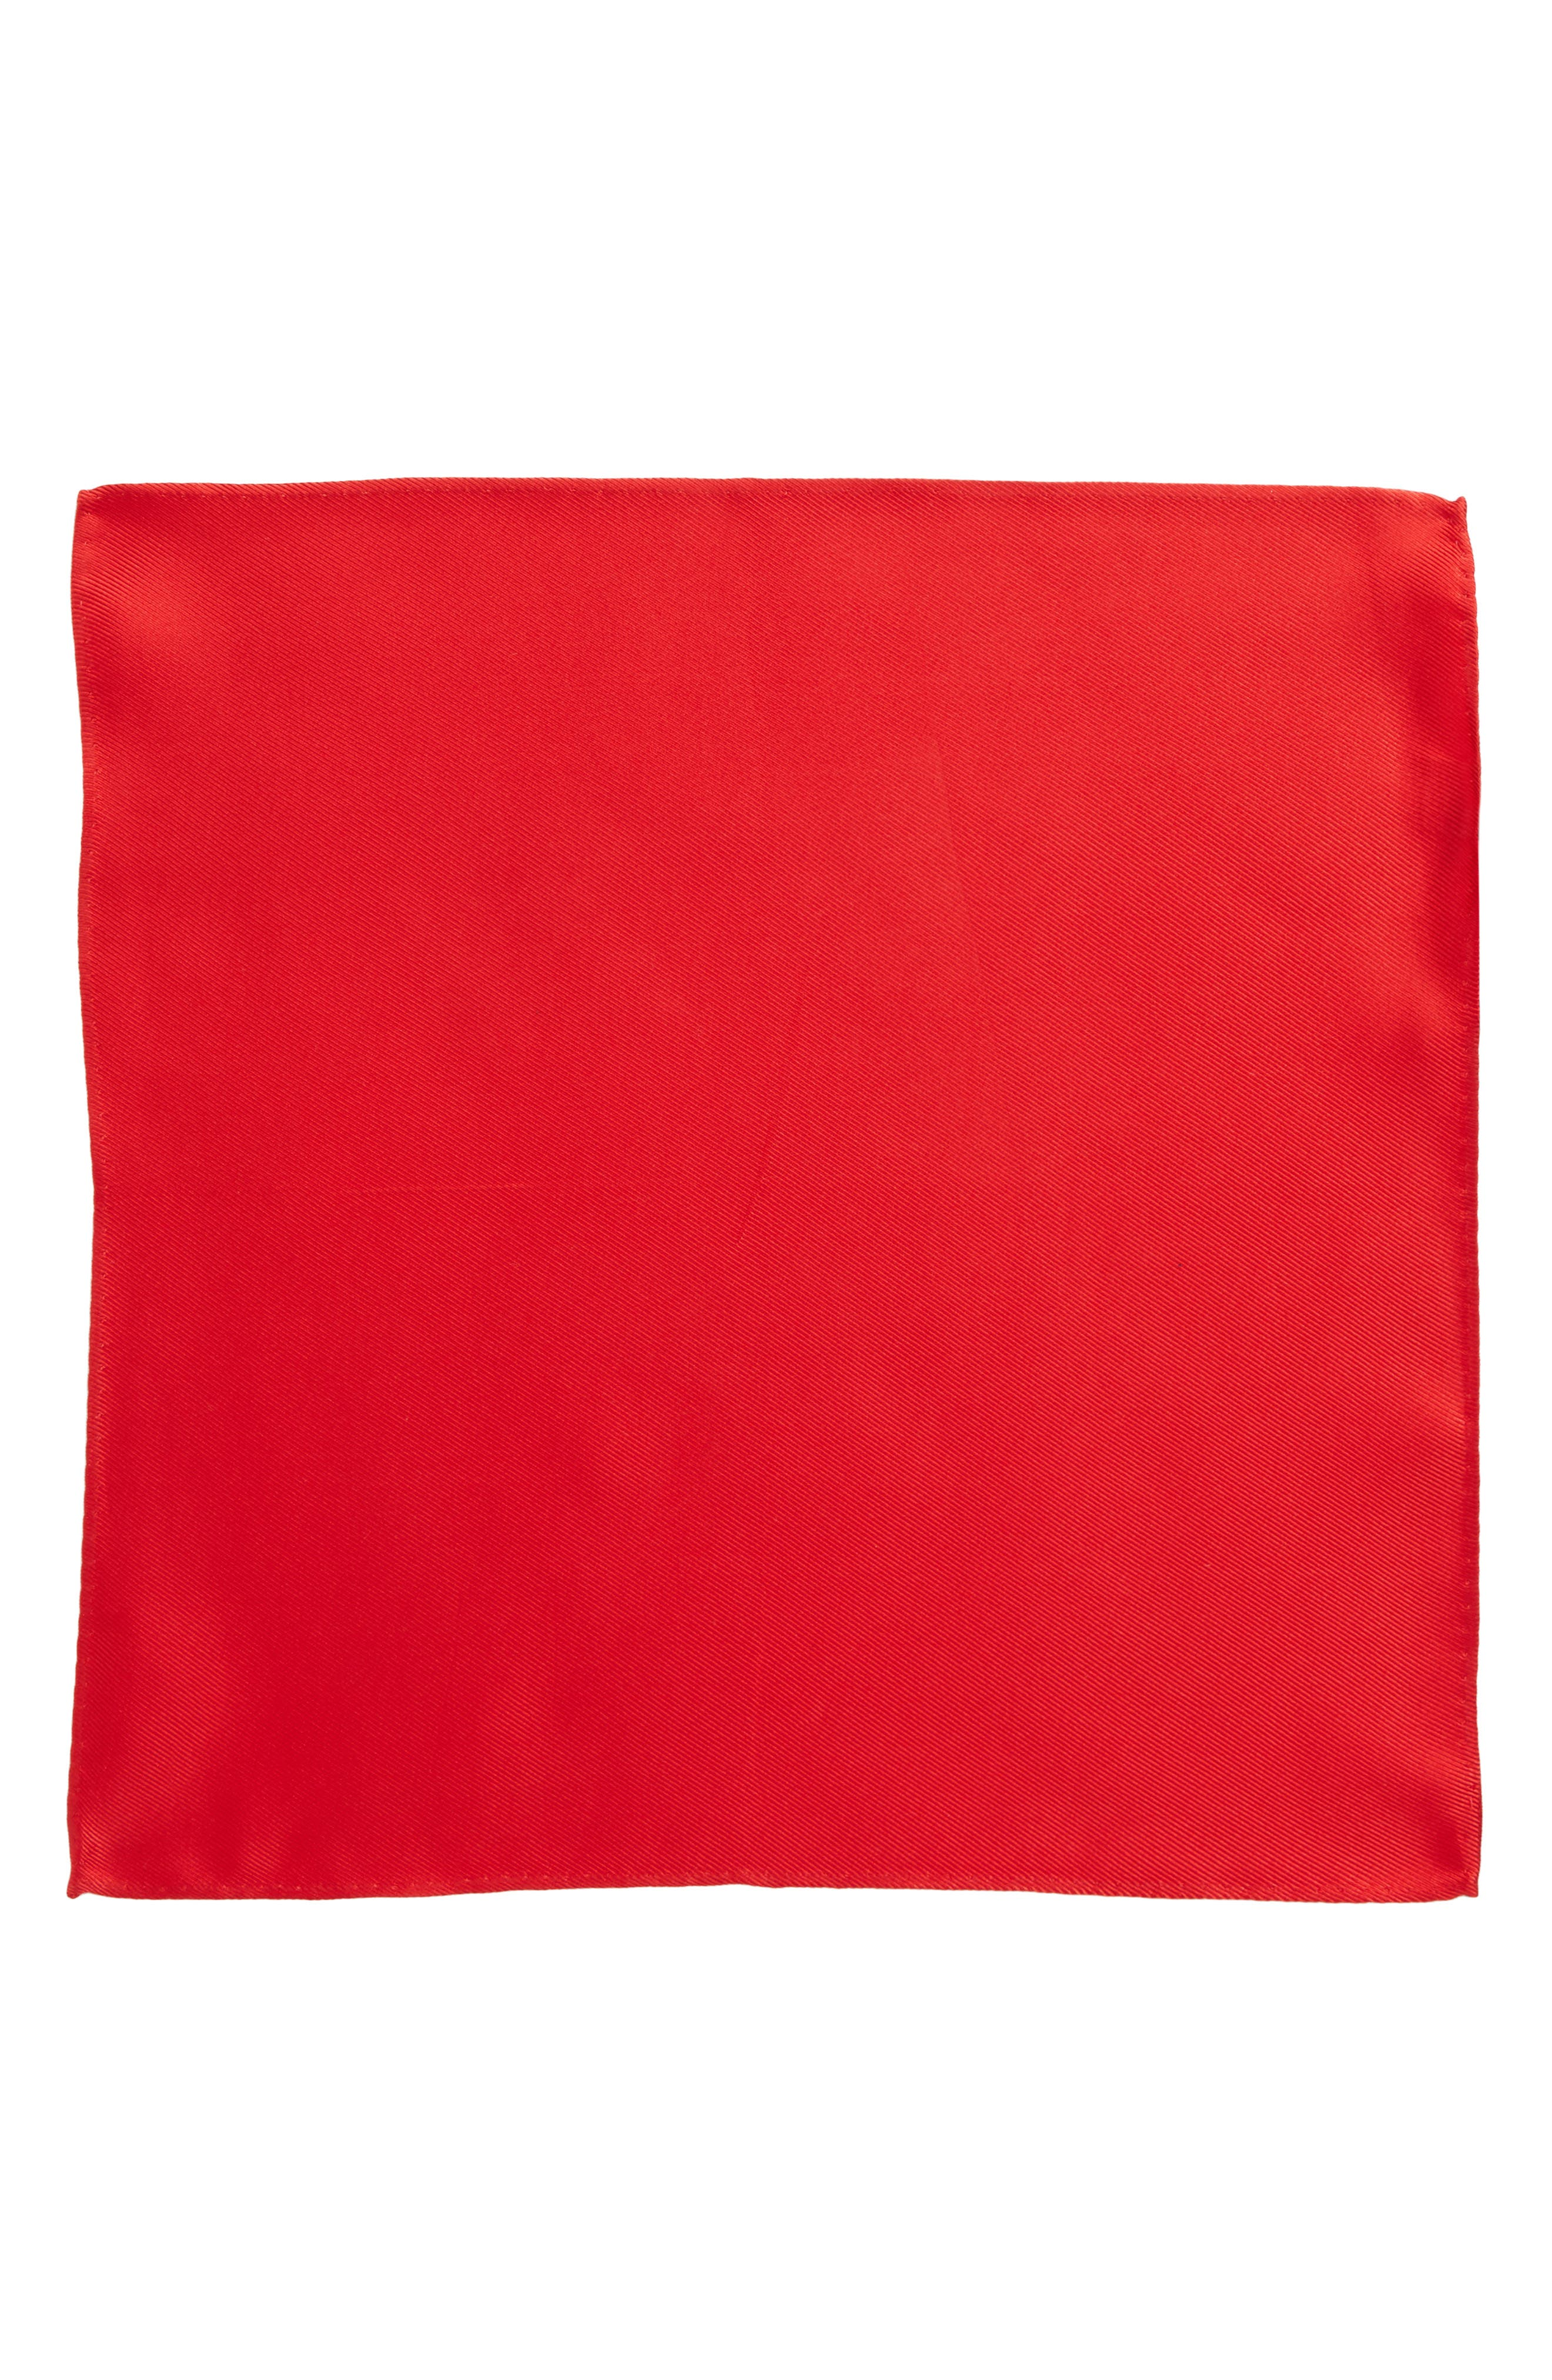 King Twill Silk Pocket Square,                             Alternate thumbnail 2, color,                             Red